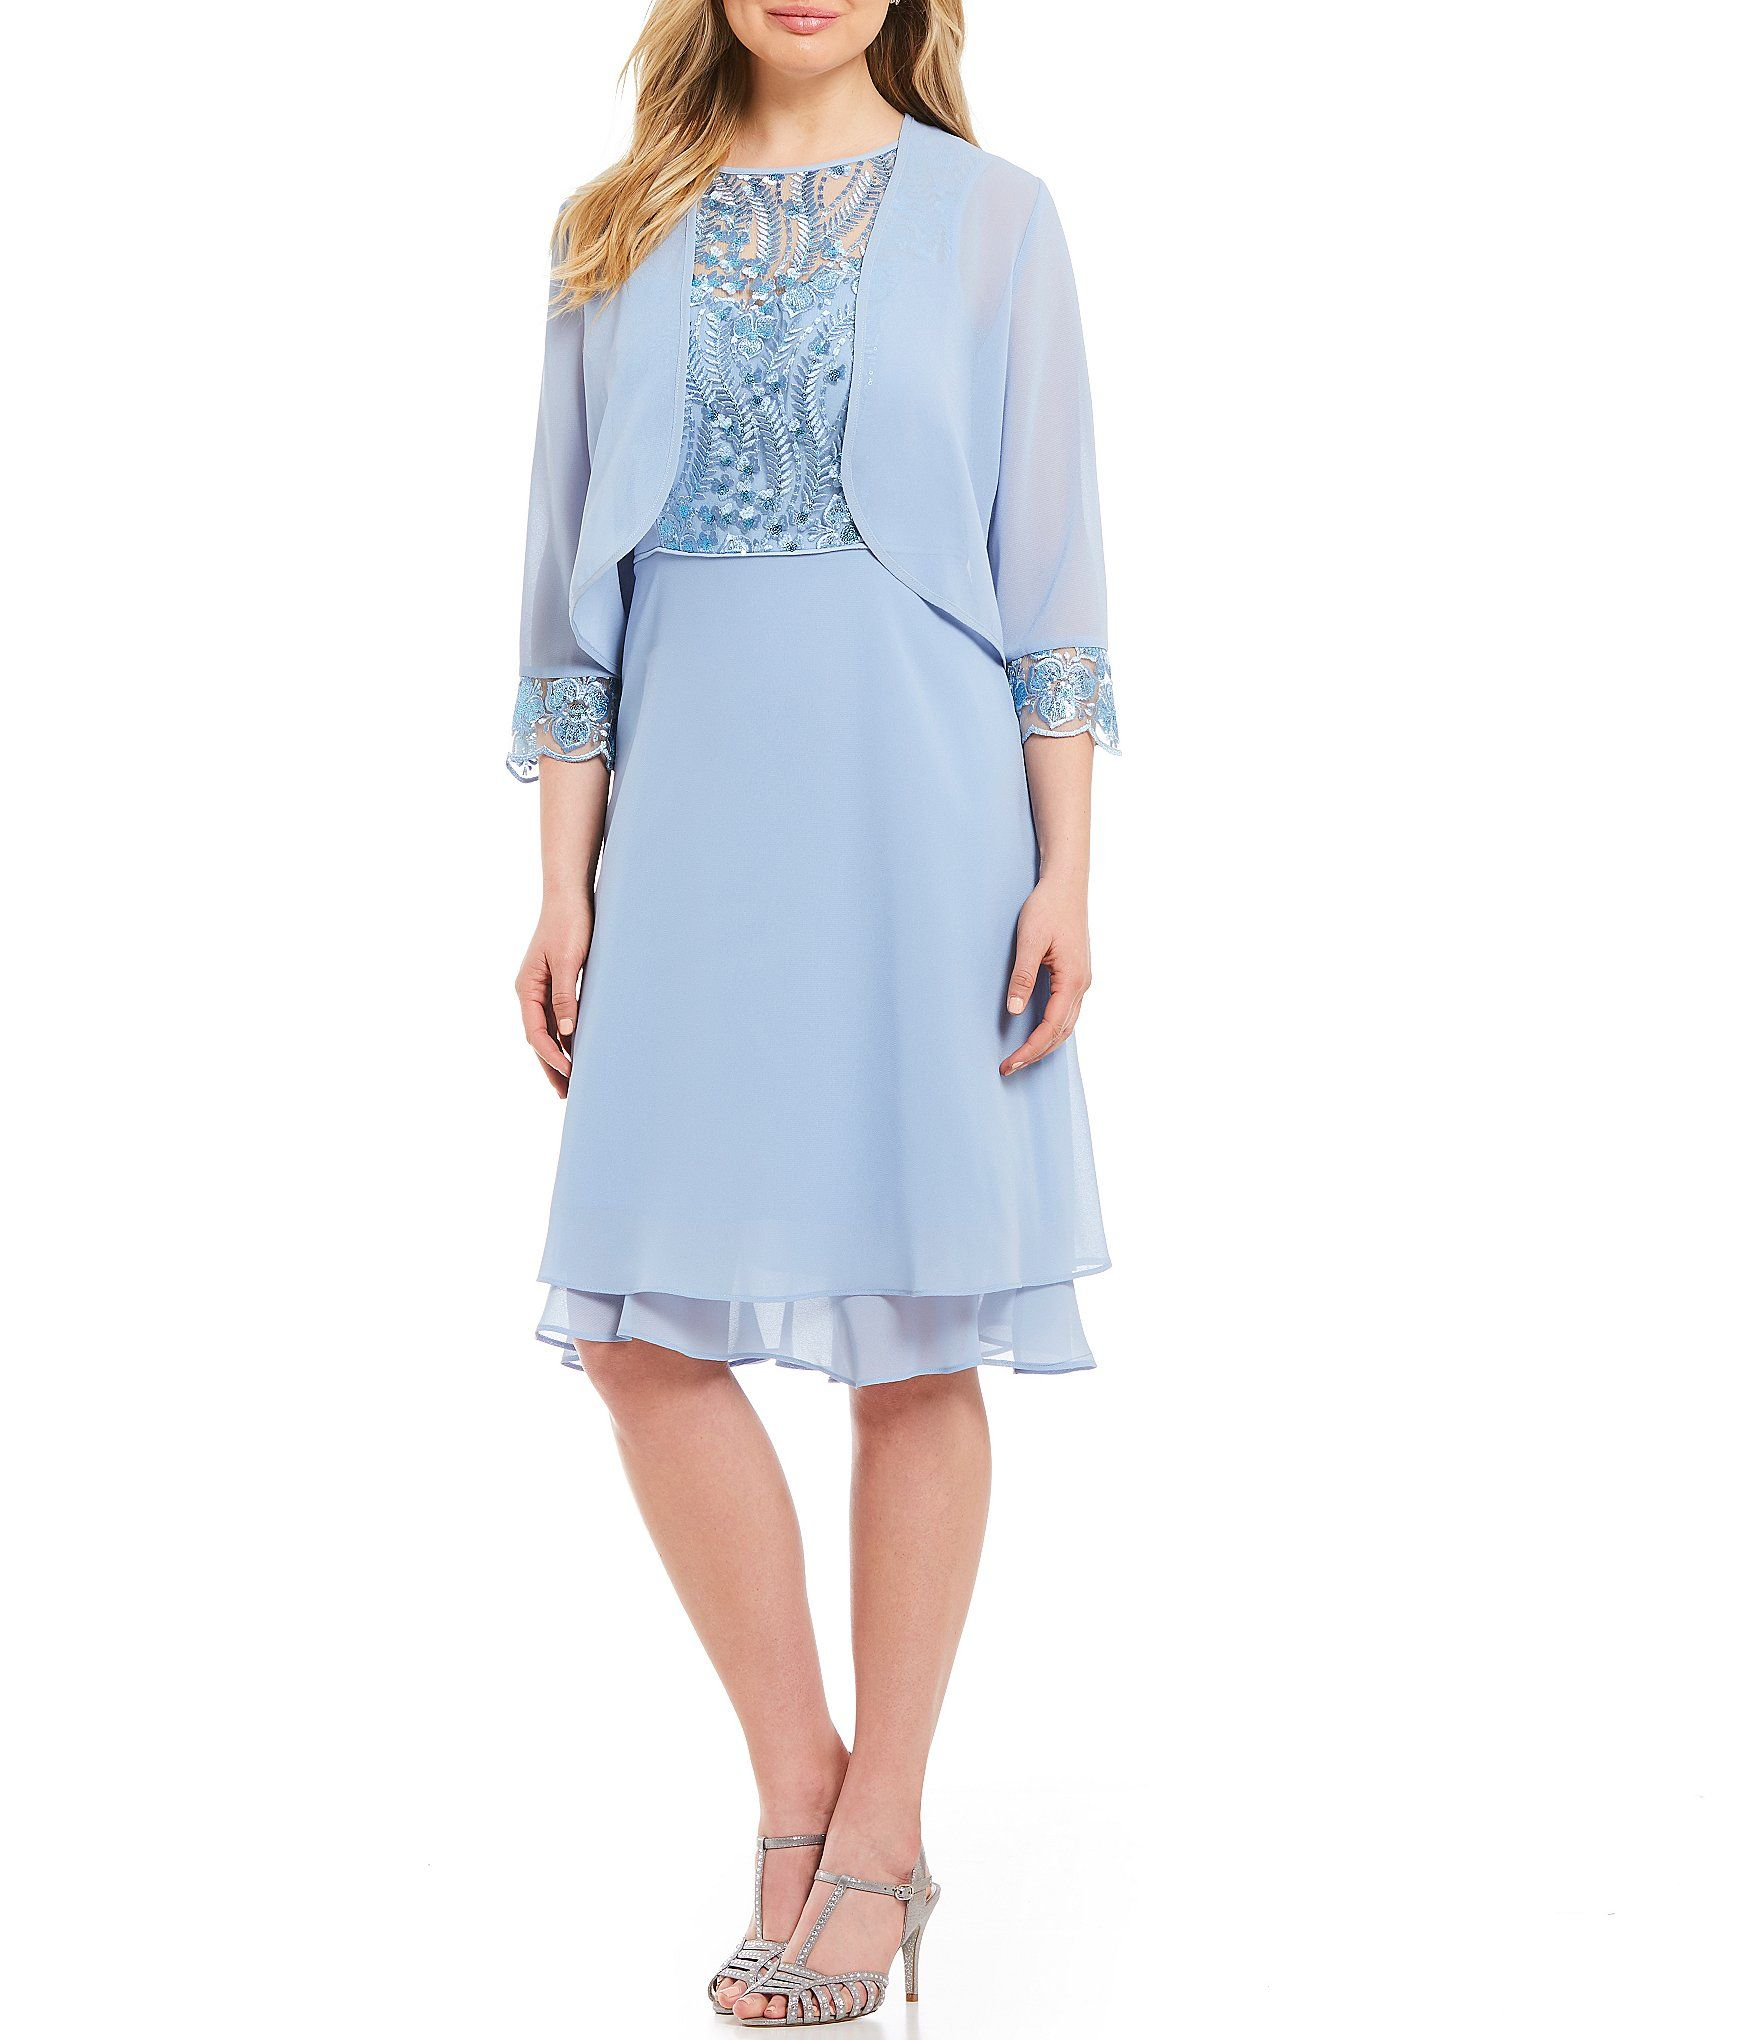 4d2b3a97a81 Shop for Le Bos Embroidered 2-Piece Jacket Dress at Dillards.com. Visit  Dillards.com to find clothing